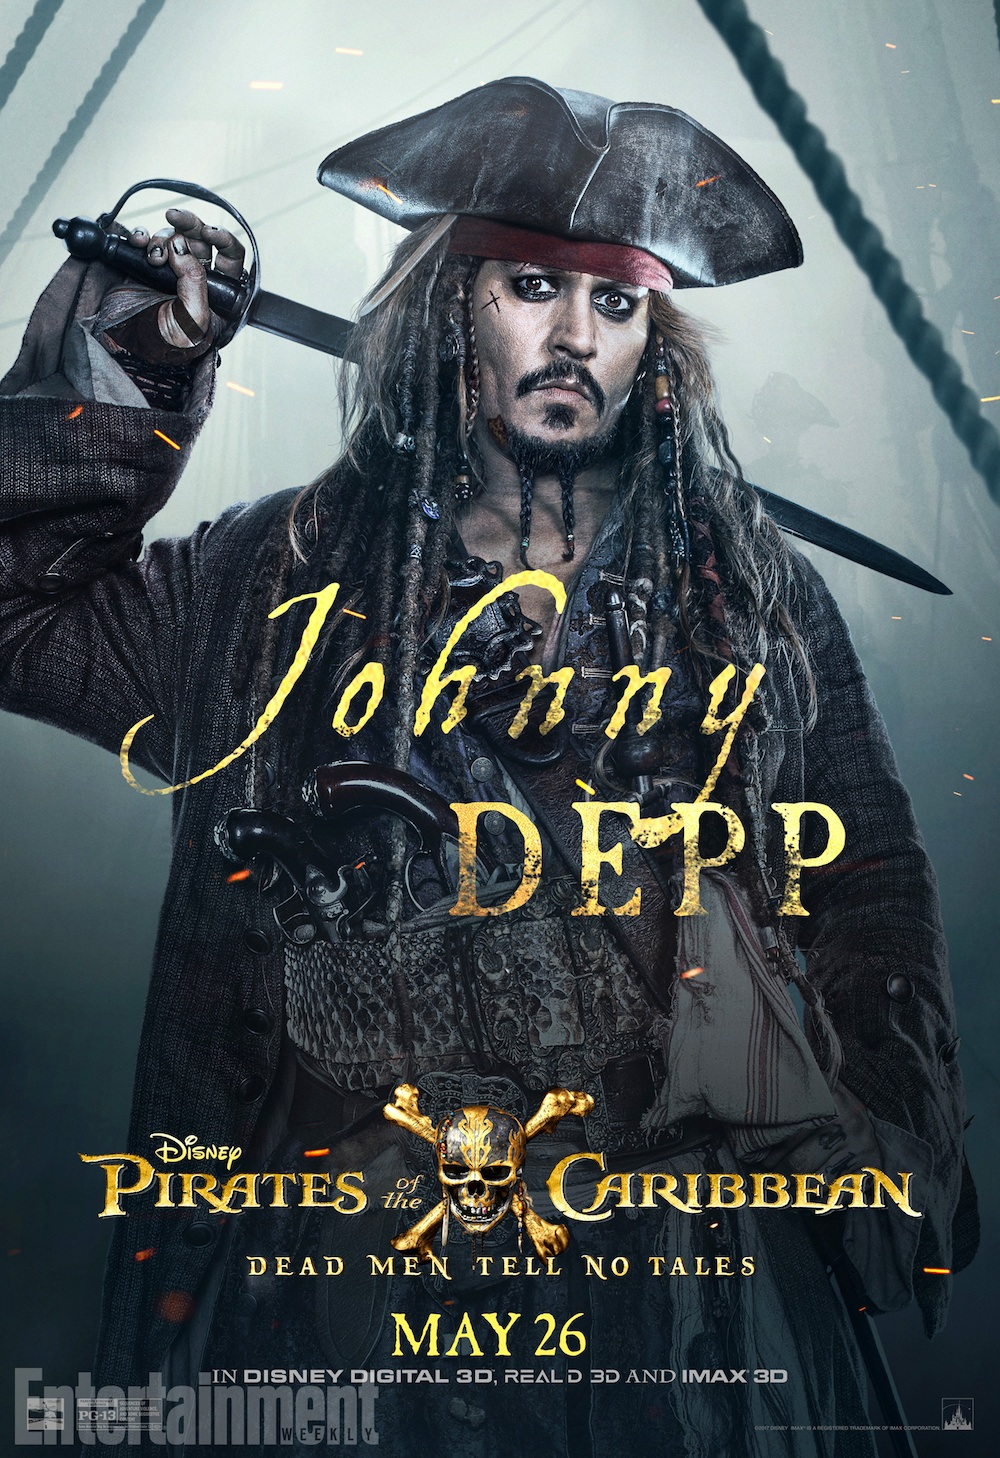 Disney Button PIRATES OF THE CARIBBEAN 5 Dead Men Tell No Tales May 2017 Opening